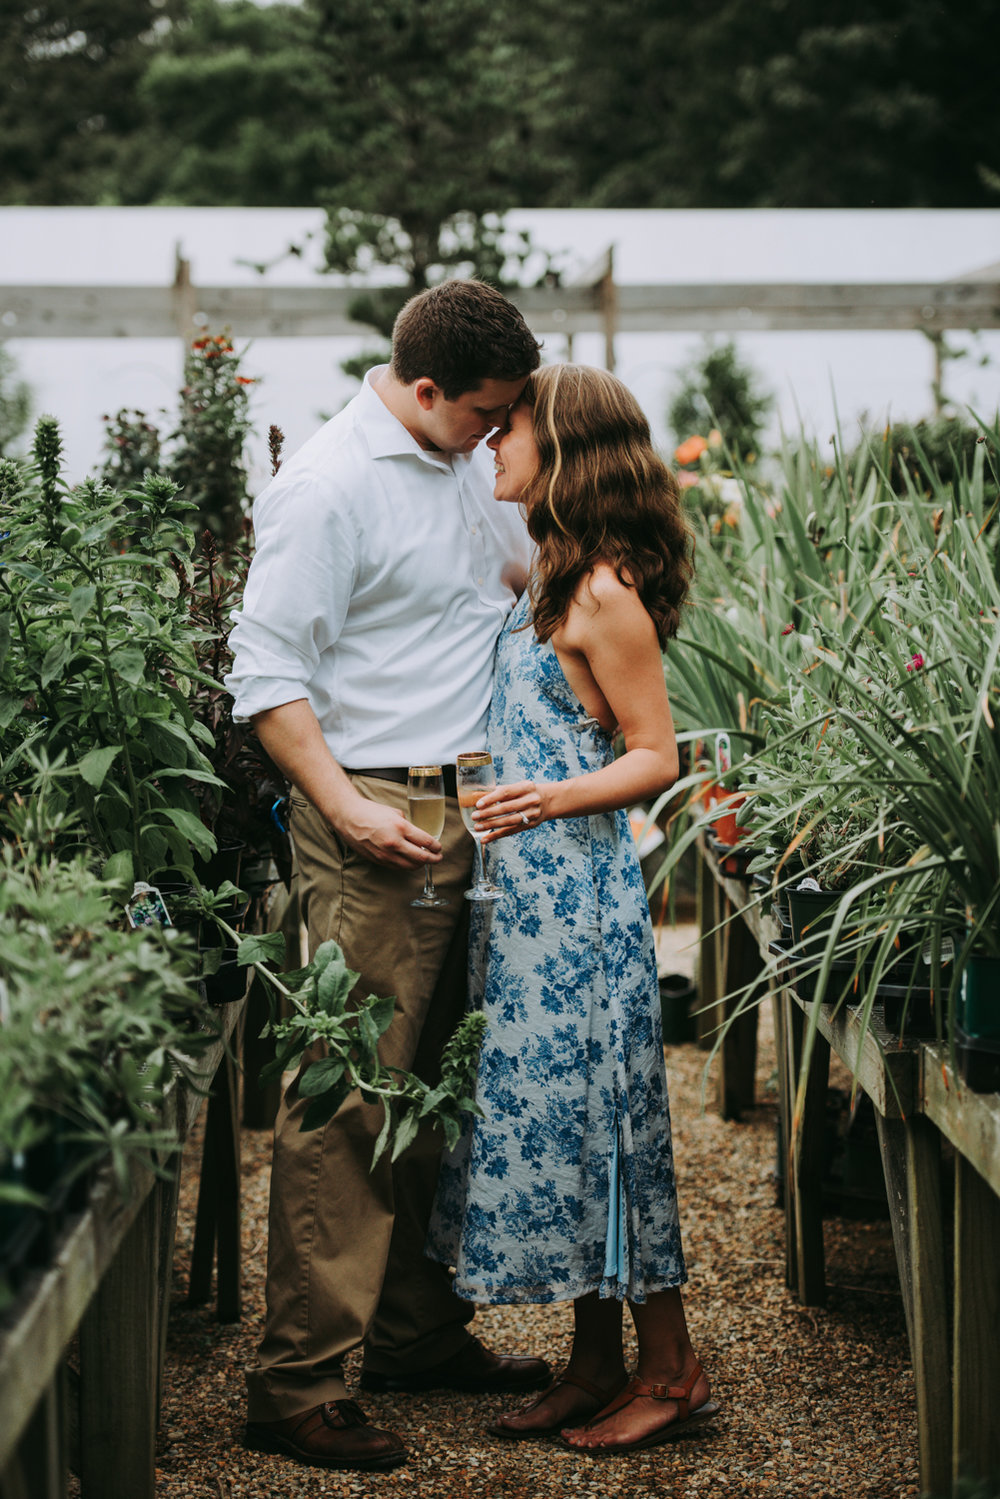 hilary_brian_engagement_middletown_nursery_west_tisbury-3747.jpg